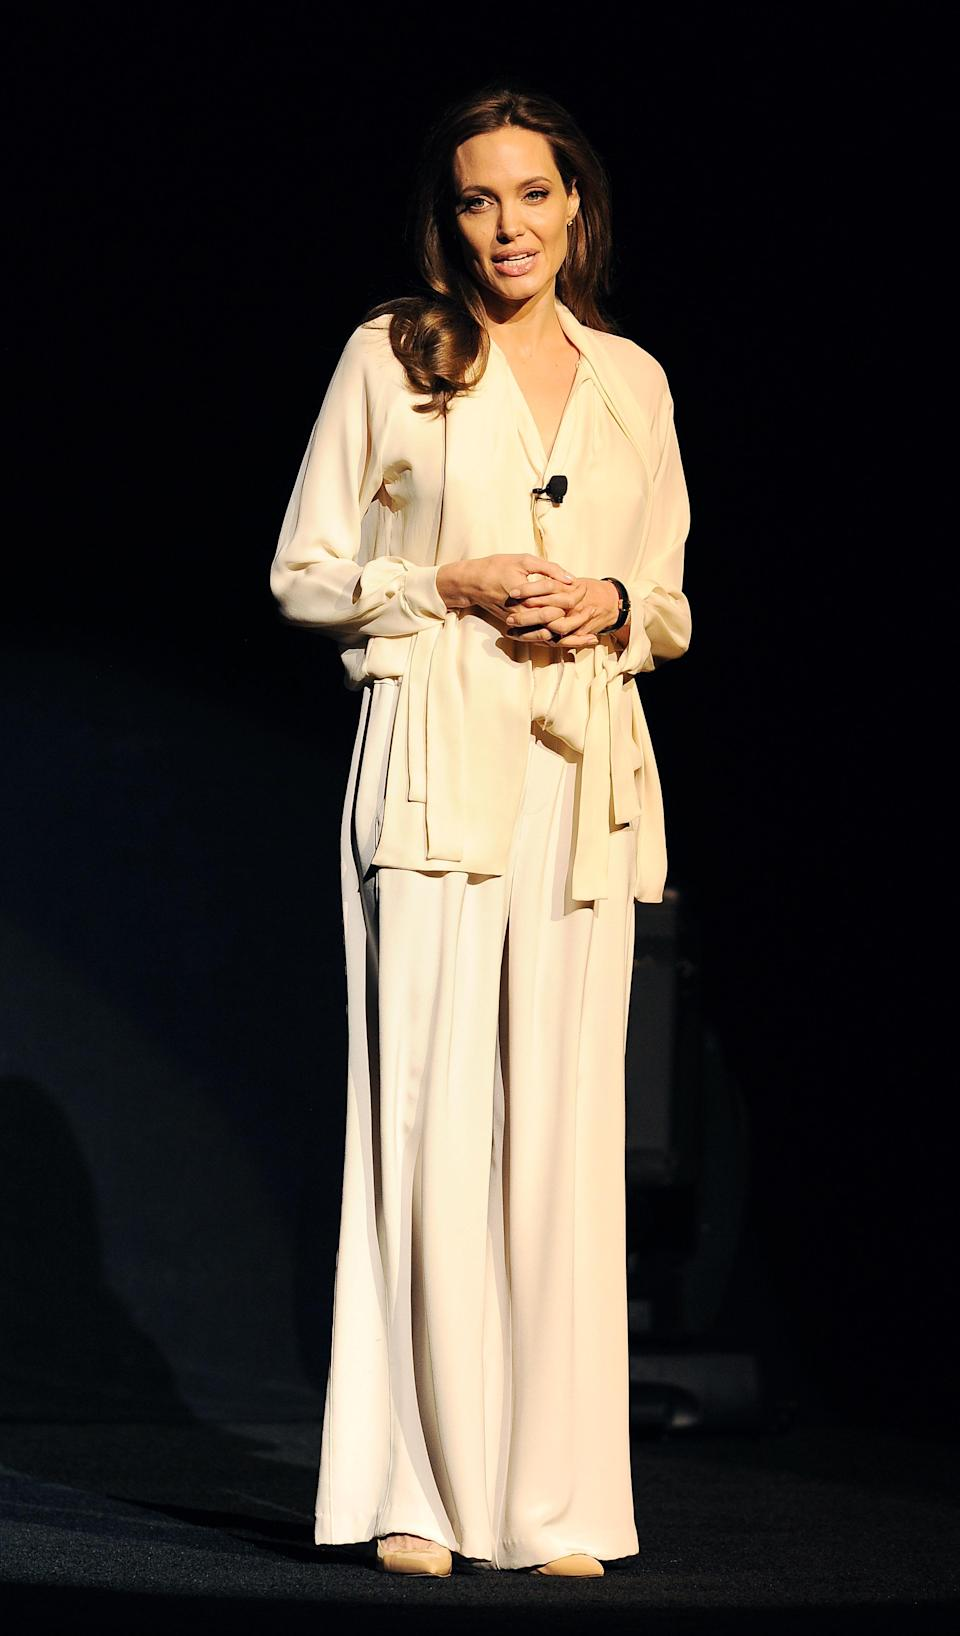 """Angelina Jolie, director of the upcoming film """"Unbroken,"""" makes a surprise appearance onstage during a Universal Pictures studio presentation at CinemaCon 2014 on Tuesday, March 25, 2014 in Las Vegas. (Photo by Chris Pizzello/Invision/AP)"""